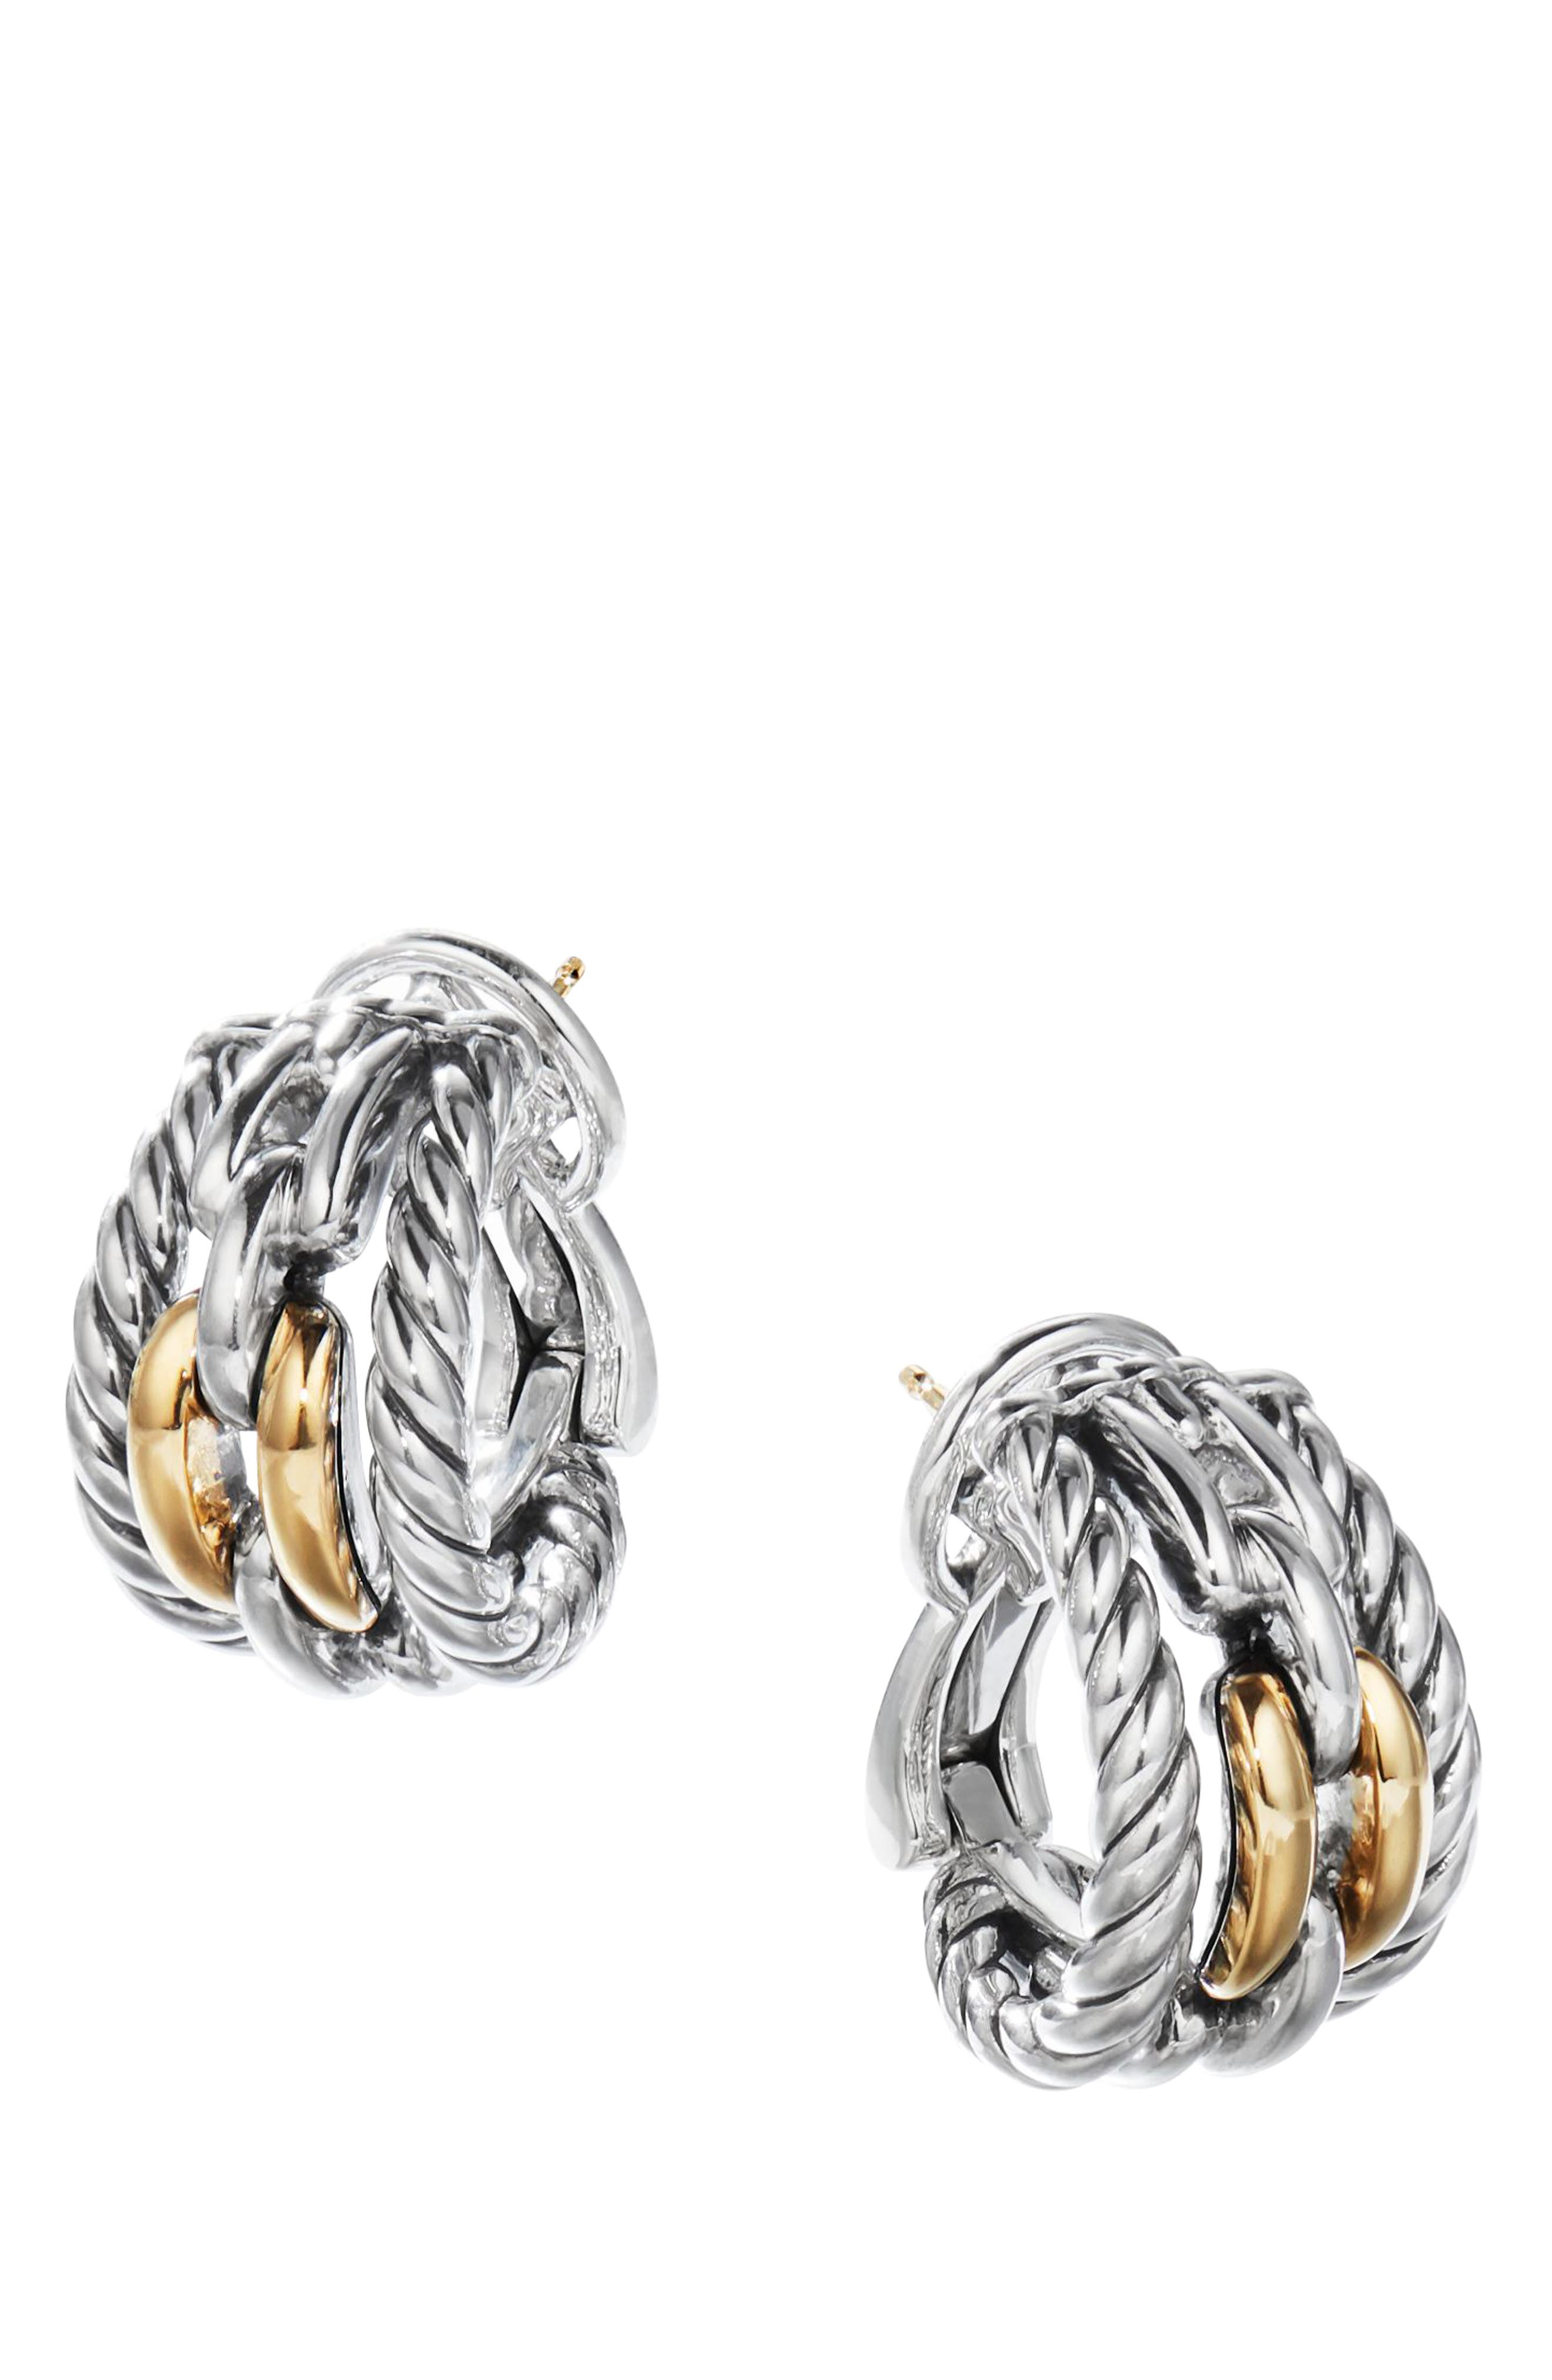 Wellesley Link Hoop Earrings with 18K Gold,                         Main,                         color, 18K YELLOW GOLD/ SILVER